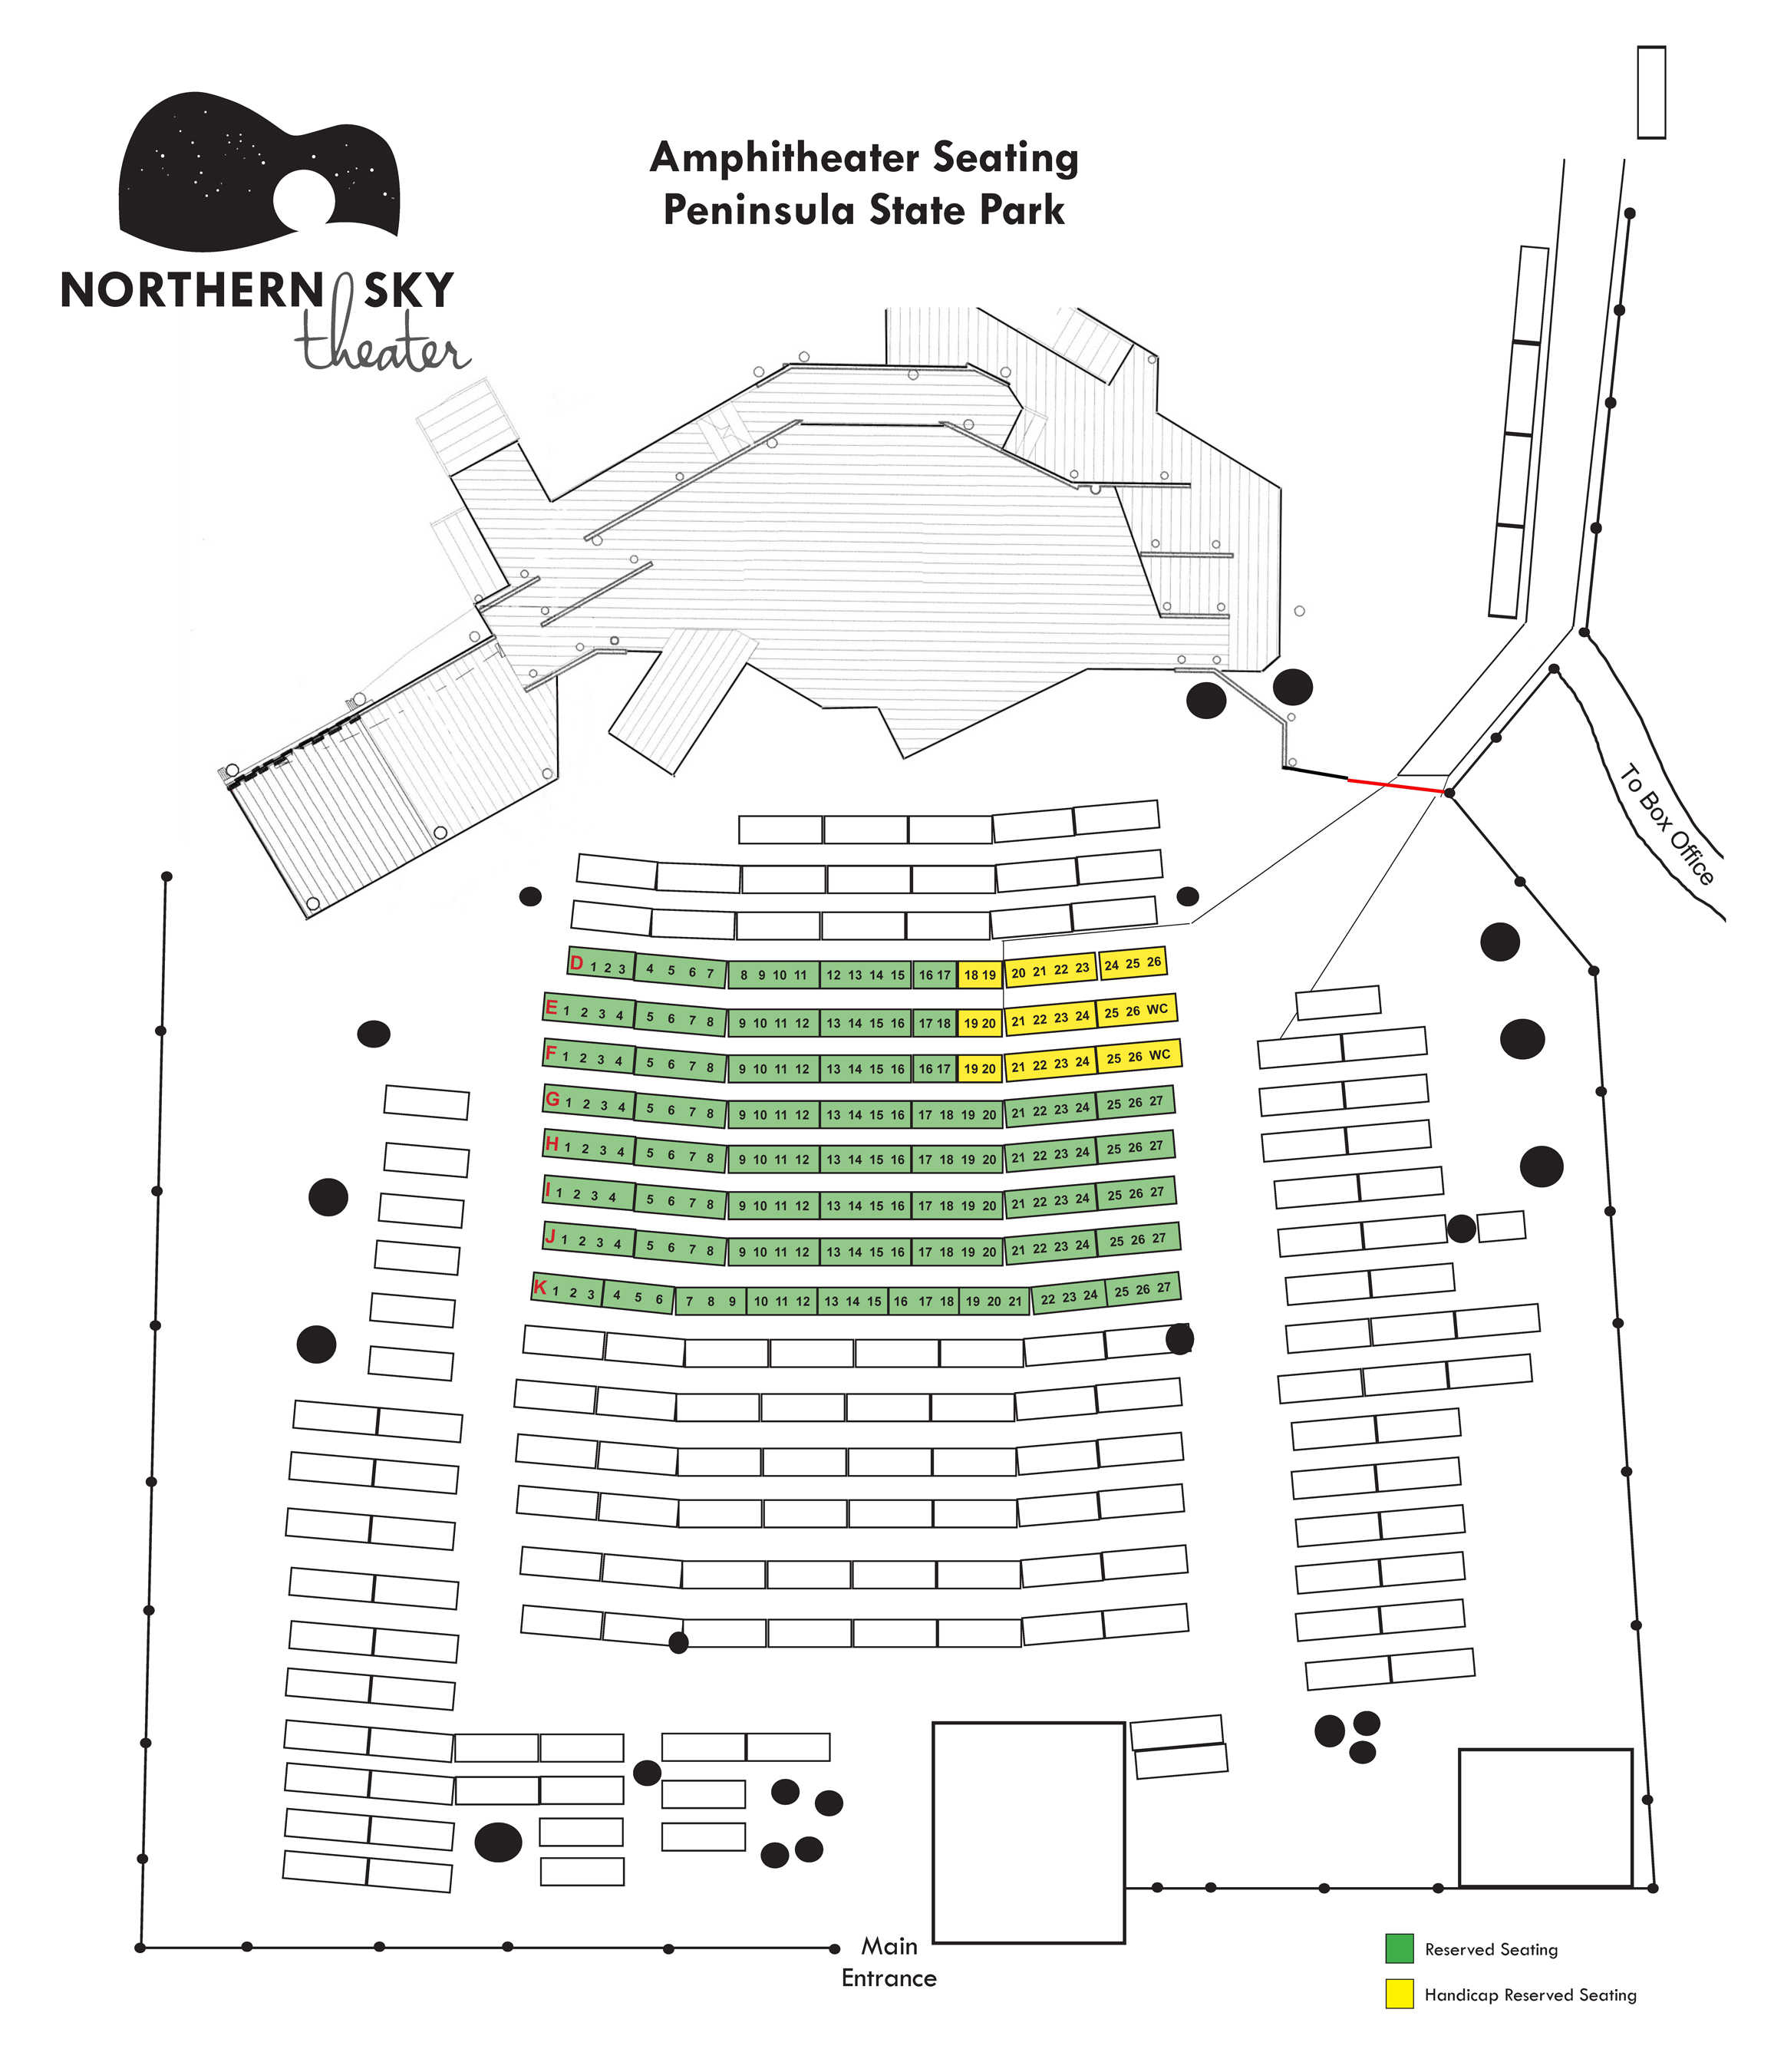 Seating Charts - Northern Sky Theater